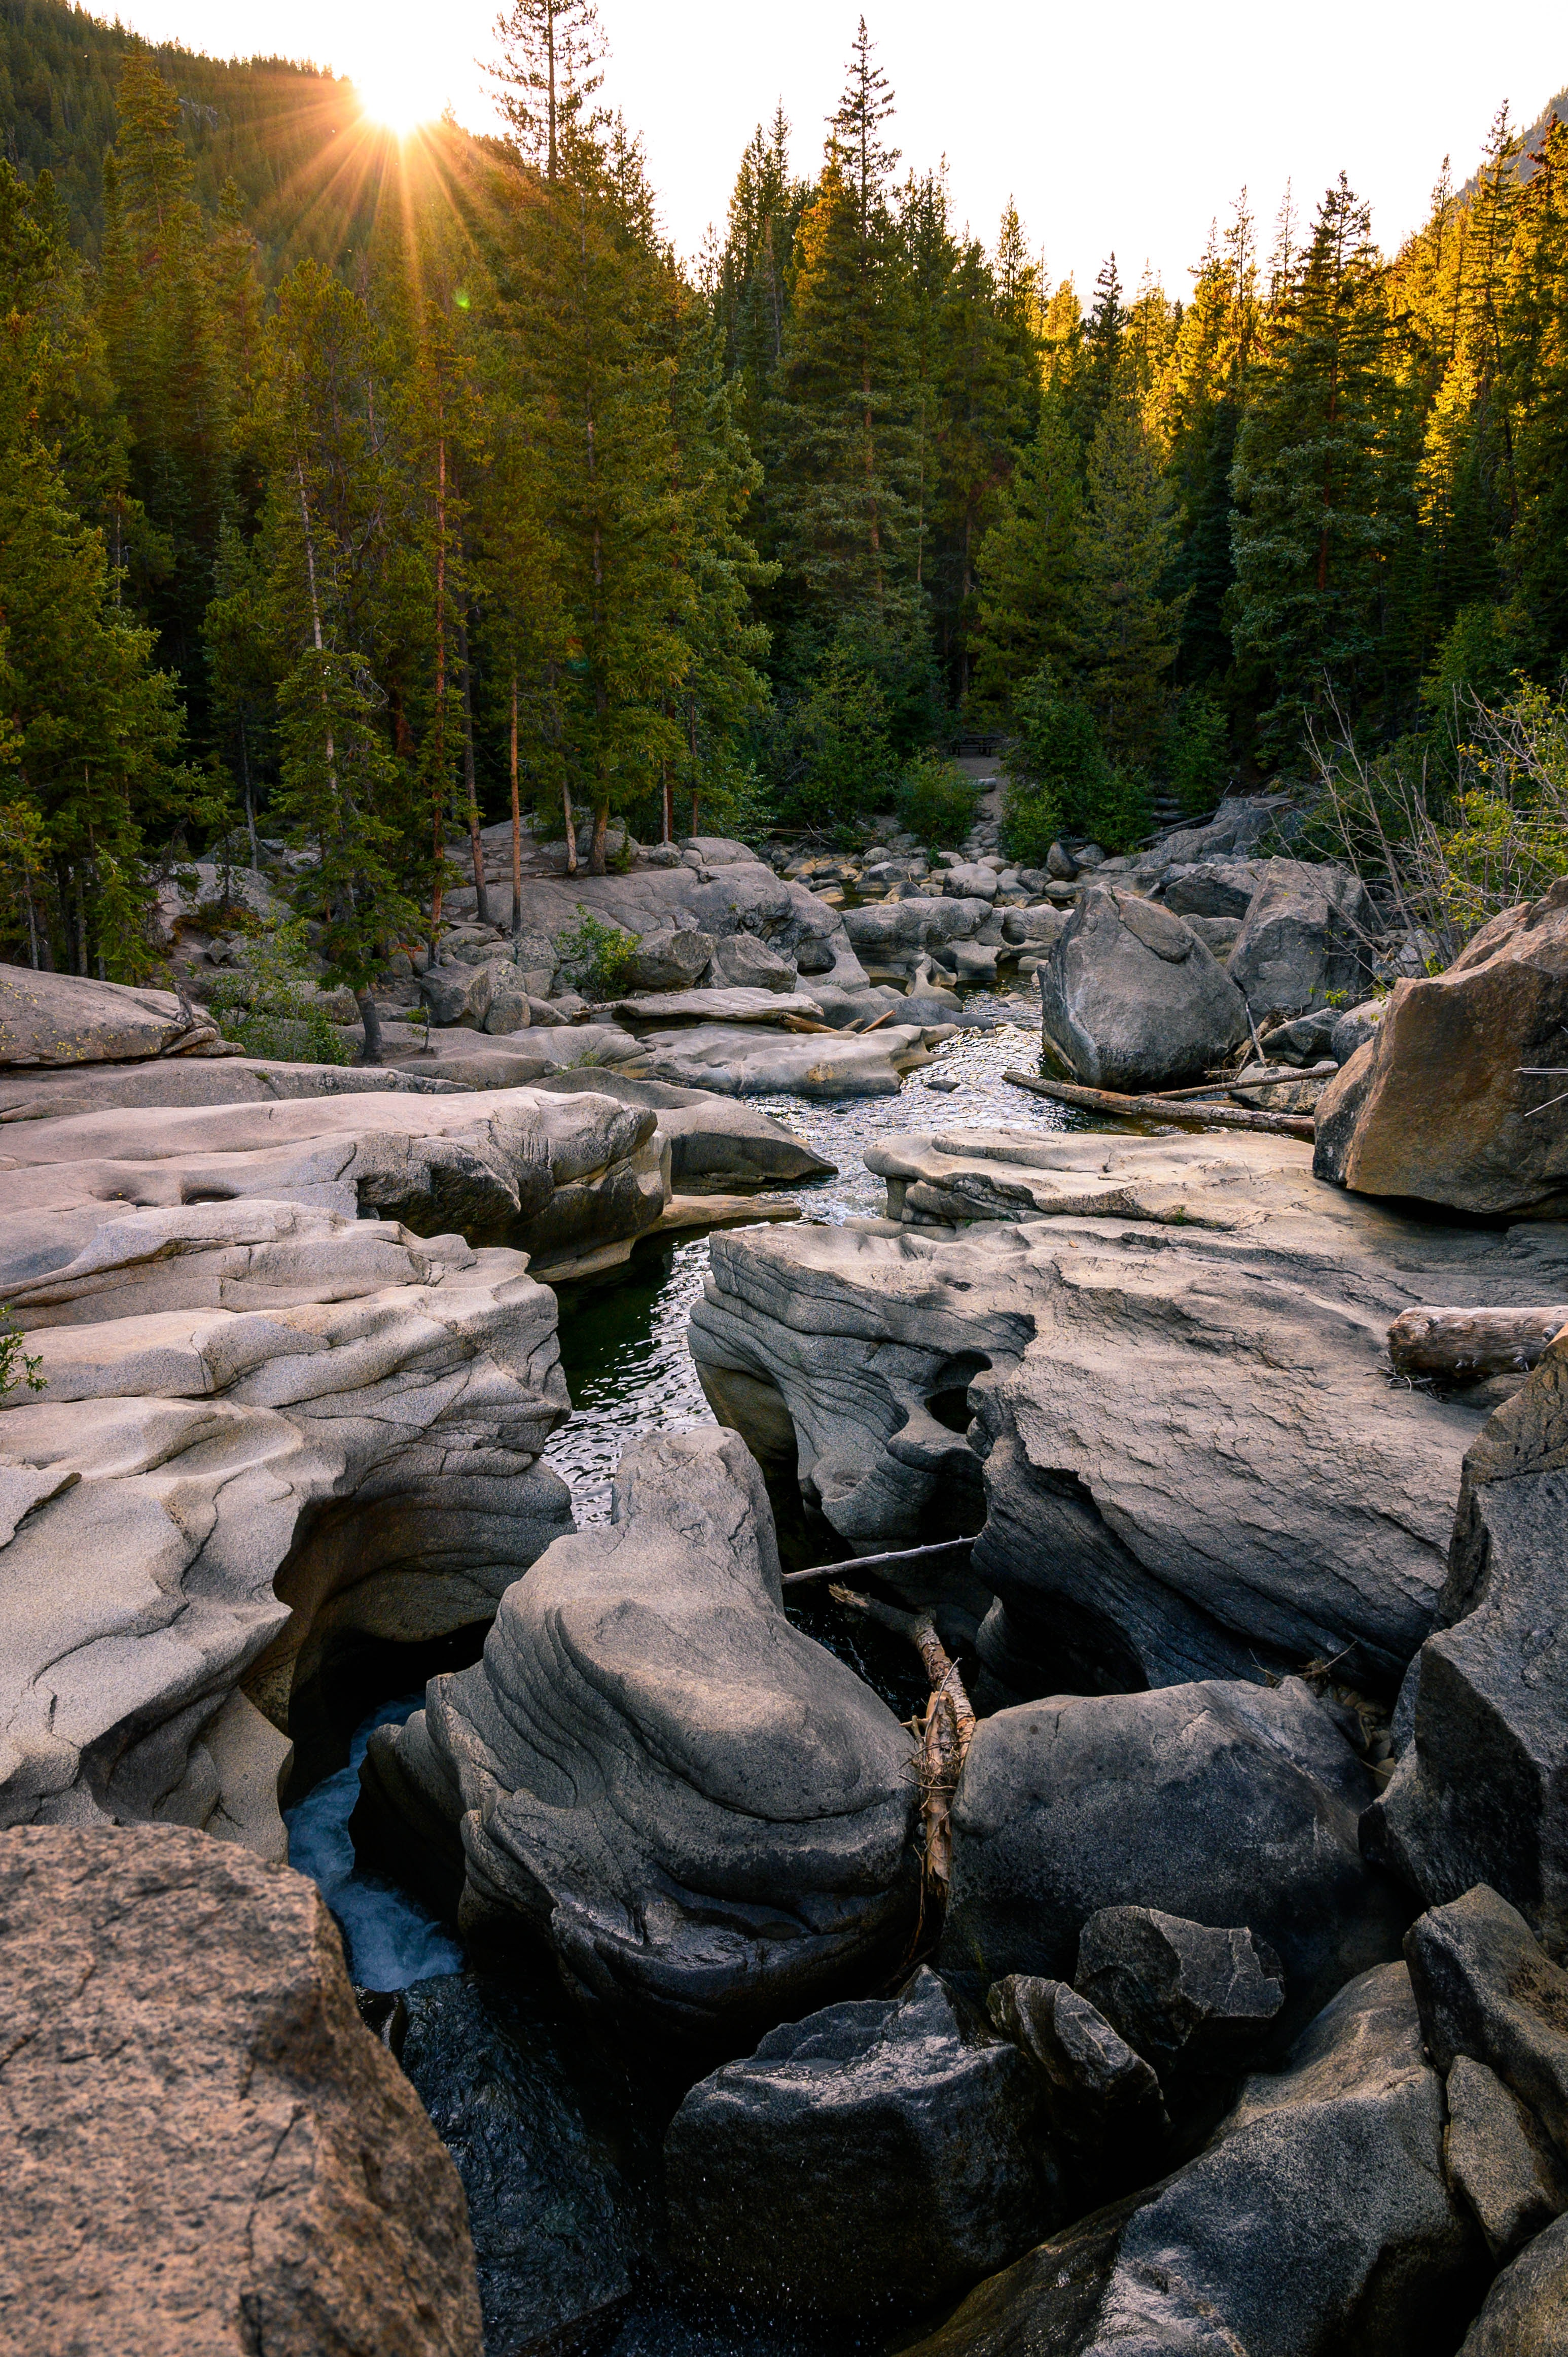 54131 download wallpaper Rivers, Stones, Forest, Nature, Landscape screensavers and pictures for free